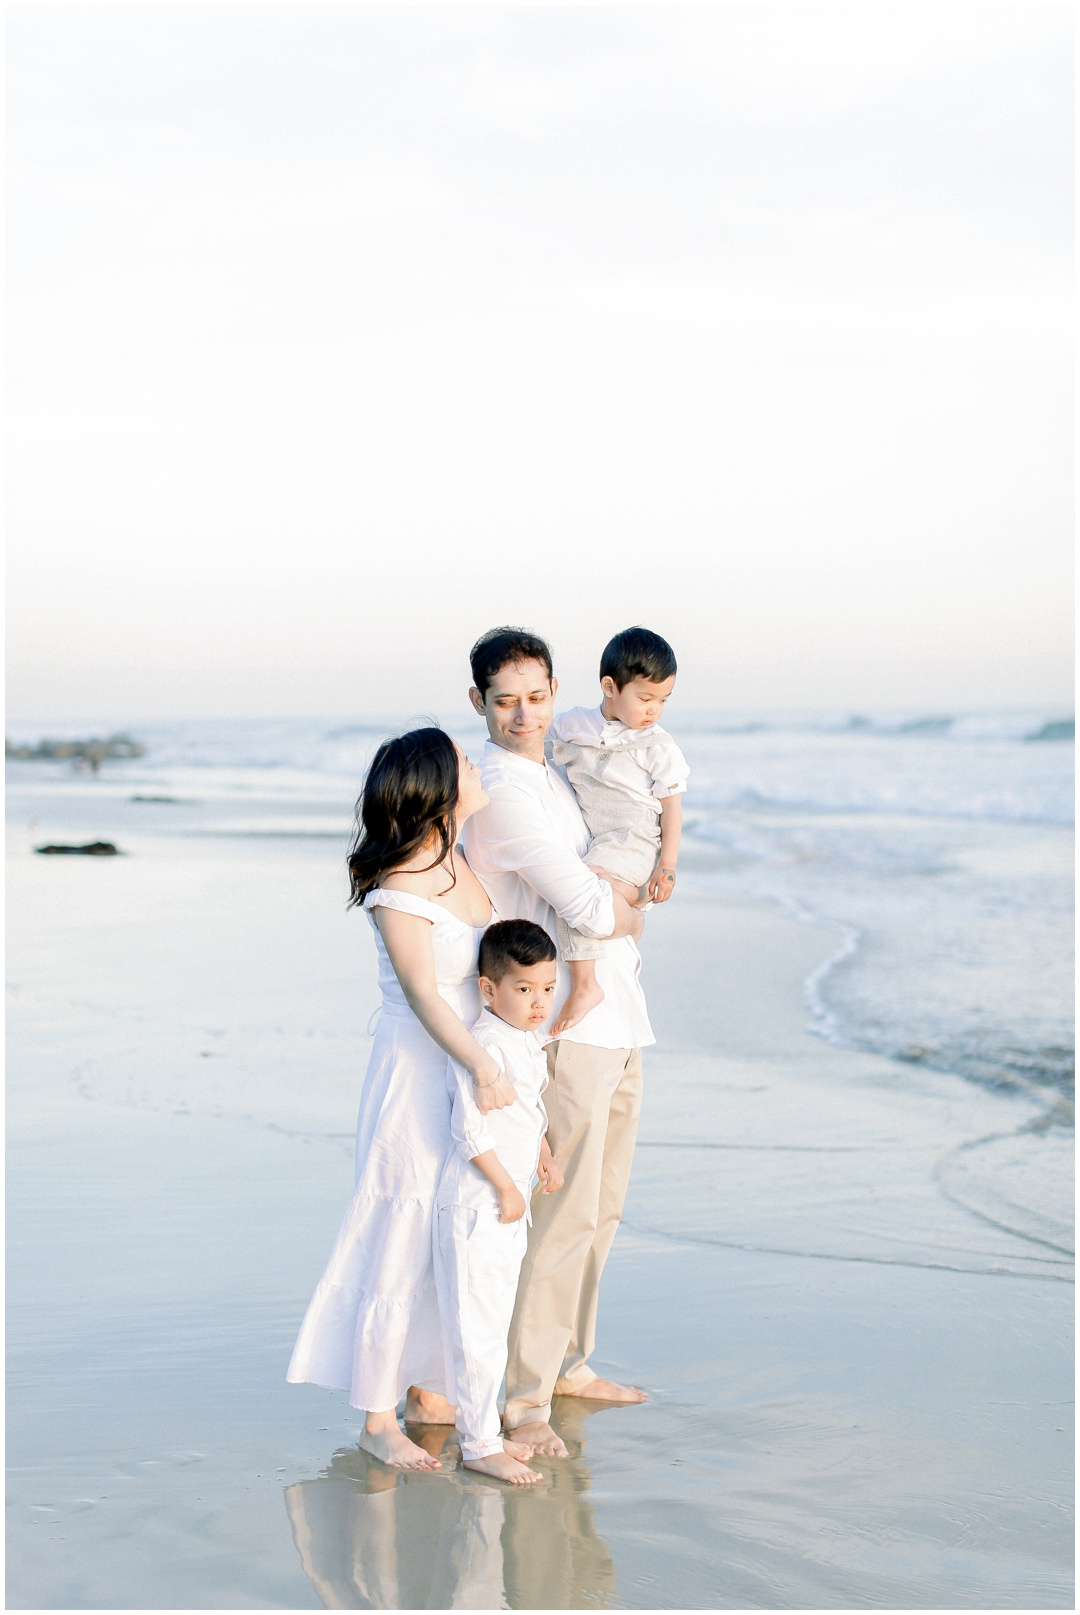 Newport_Beach_Newborn_Light_Airy_Natural_Photographer_Newport_Beach_Photographer_Orange_County_Family_Photographer_Cori_Kleckner_Photography_Huntington_Beach_Photographer_Family_OC_Newborn_Christine_Cho_Family_session__3396.jpg